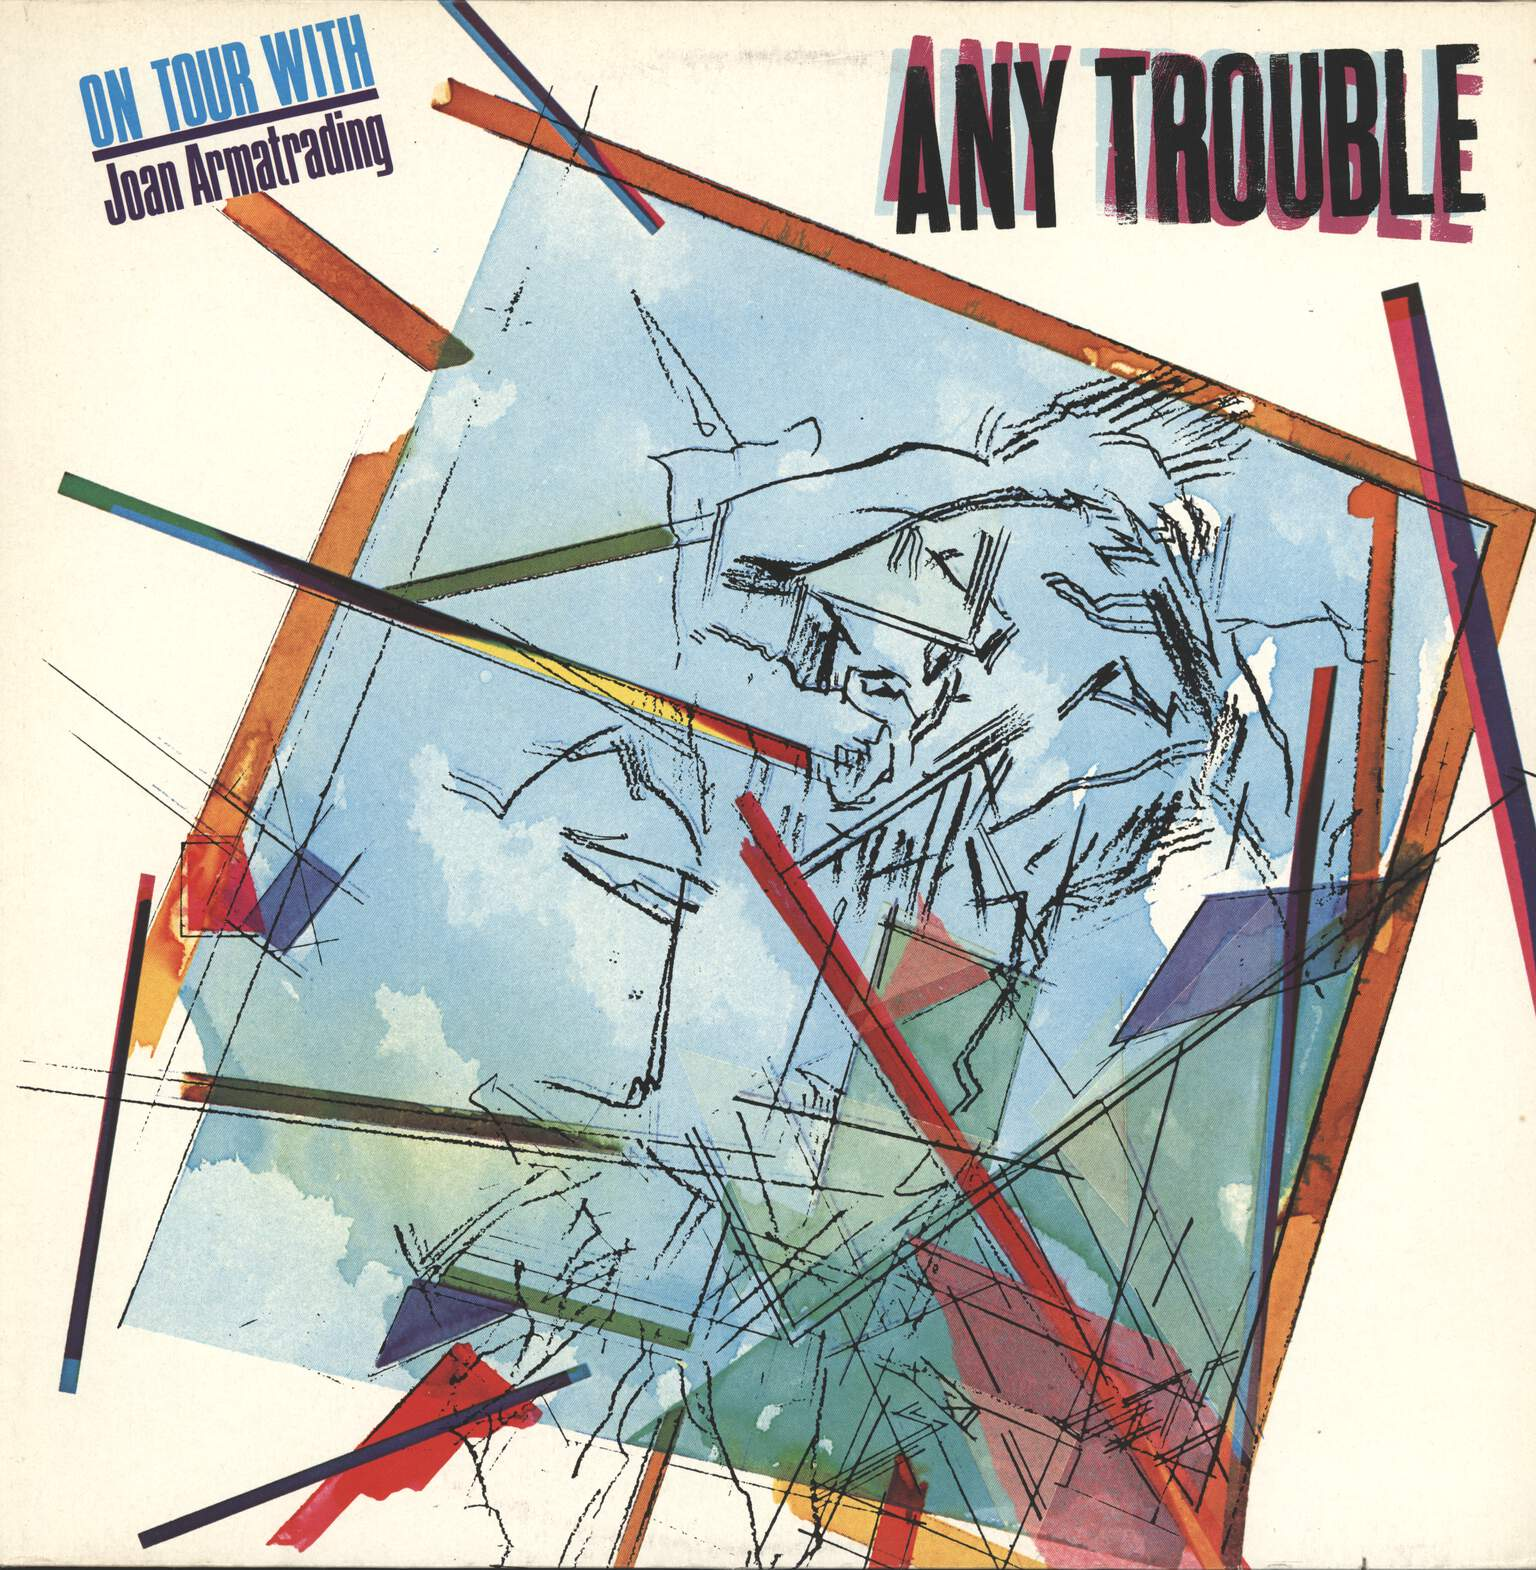 Any Trouble: Any Trouble (On Tour With Joan Armatrading), LP (Vinyl)